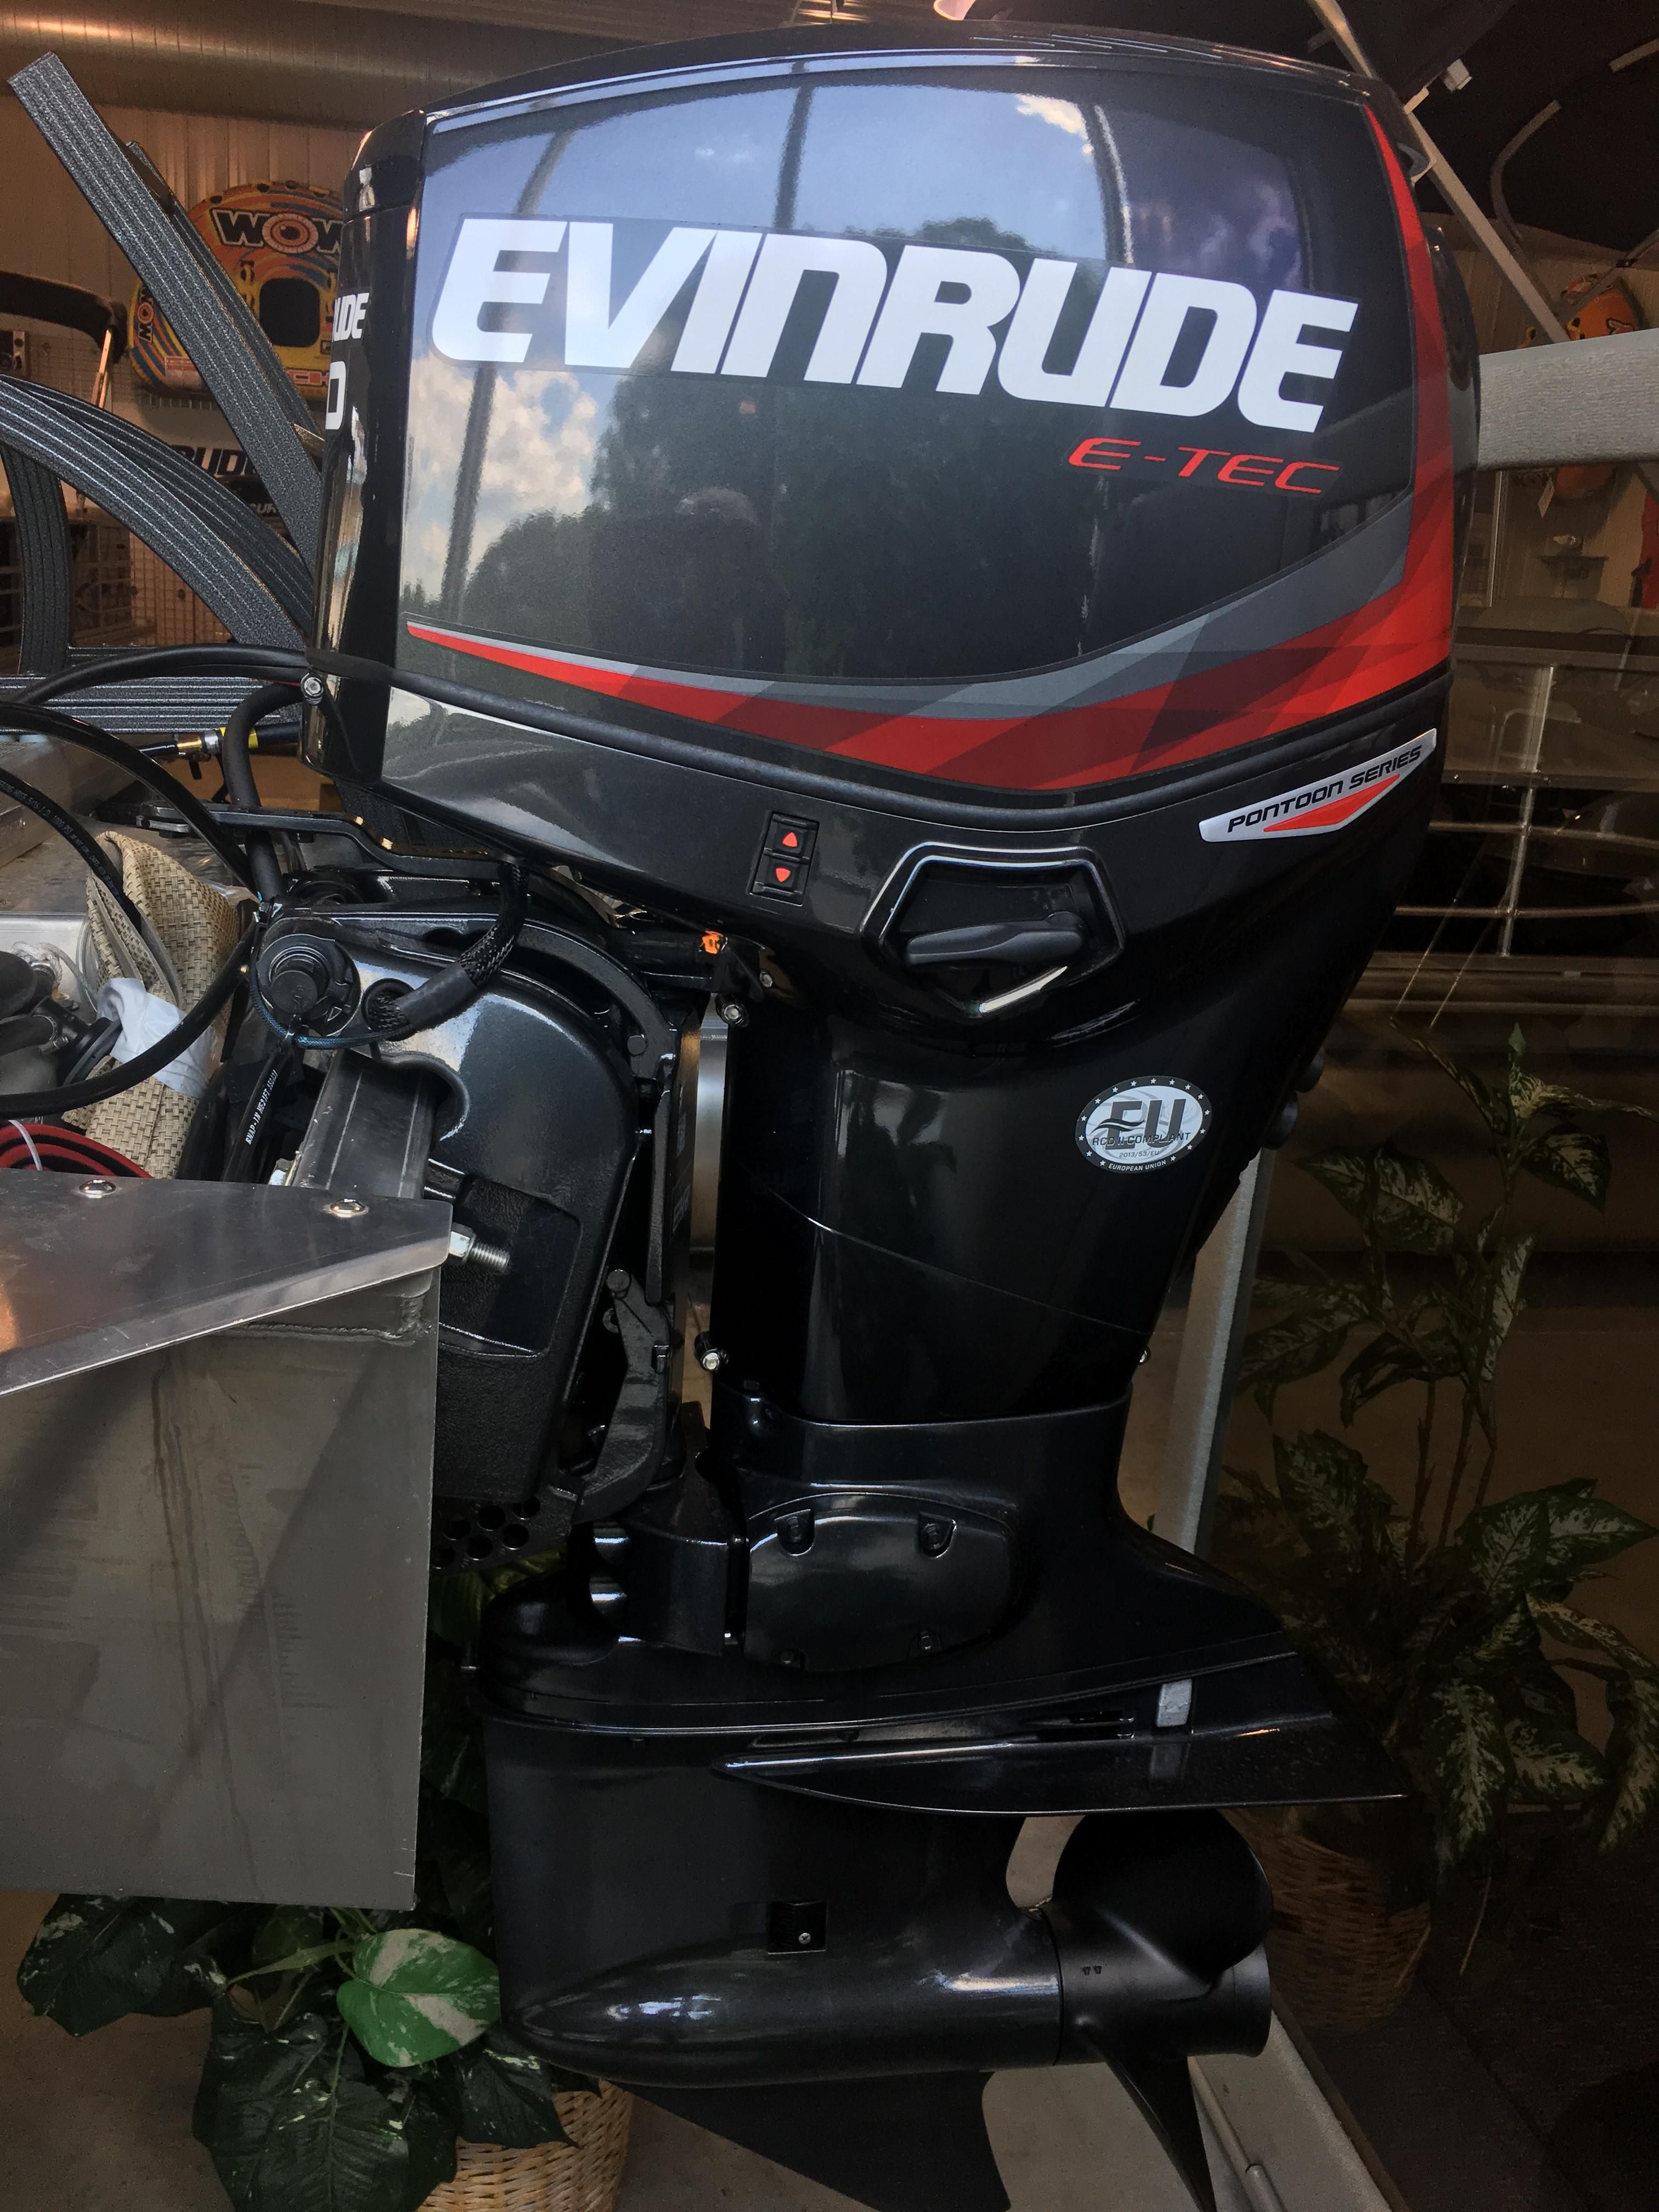 2017 evinrude 40 150 hp all makes power boat for sale for 40 hp evinrude outboard motor for sale